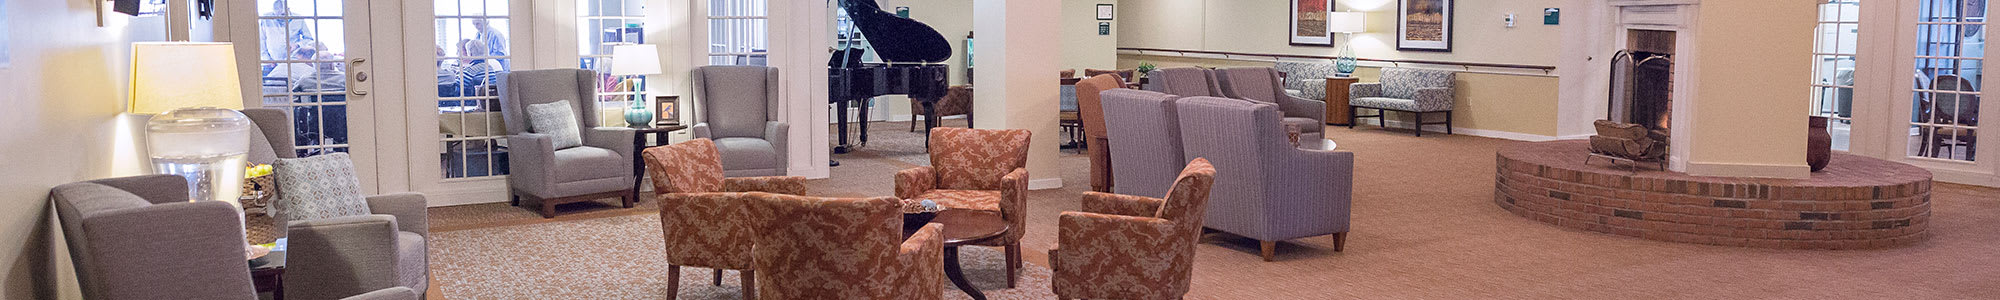 Life Enrichment Activities at Broadmore Senior Living at Teays Valley